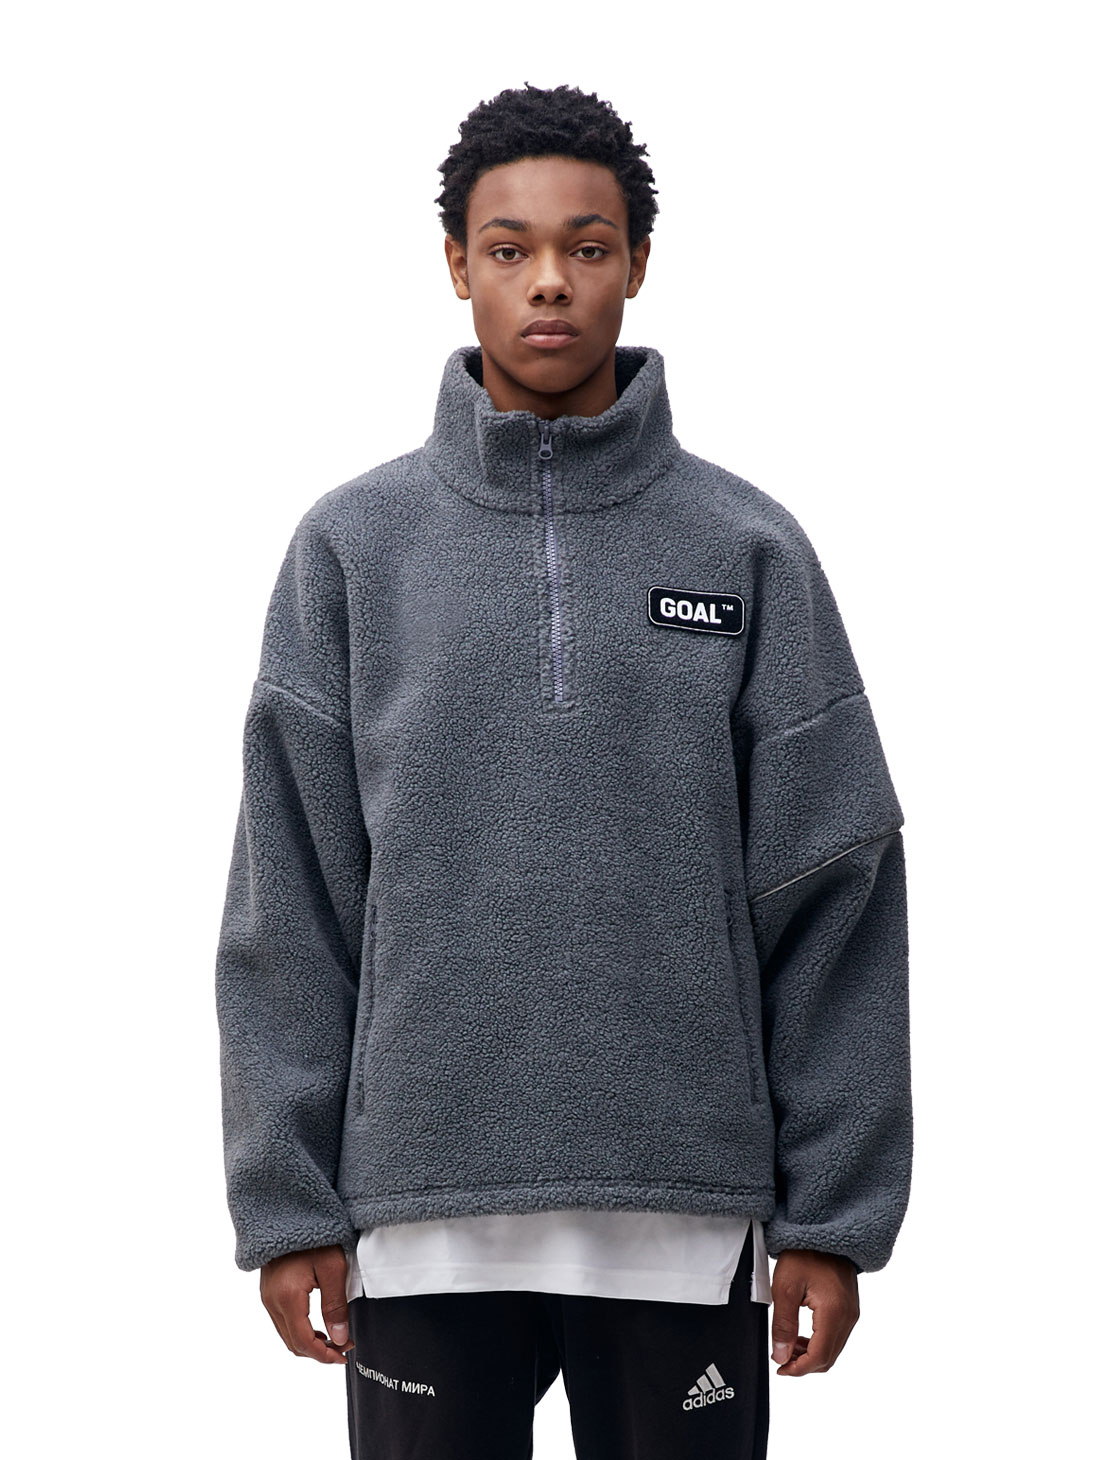 (Sold Out) FLEECE ZIP UP PULLOVER - GRAY